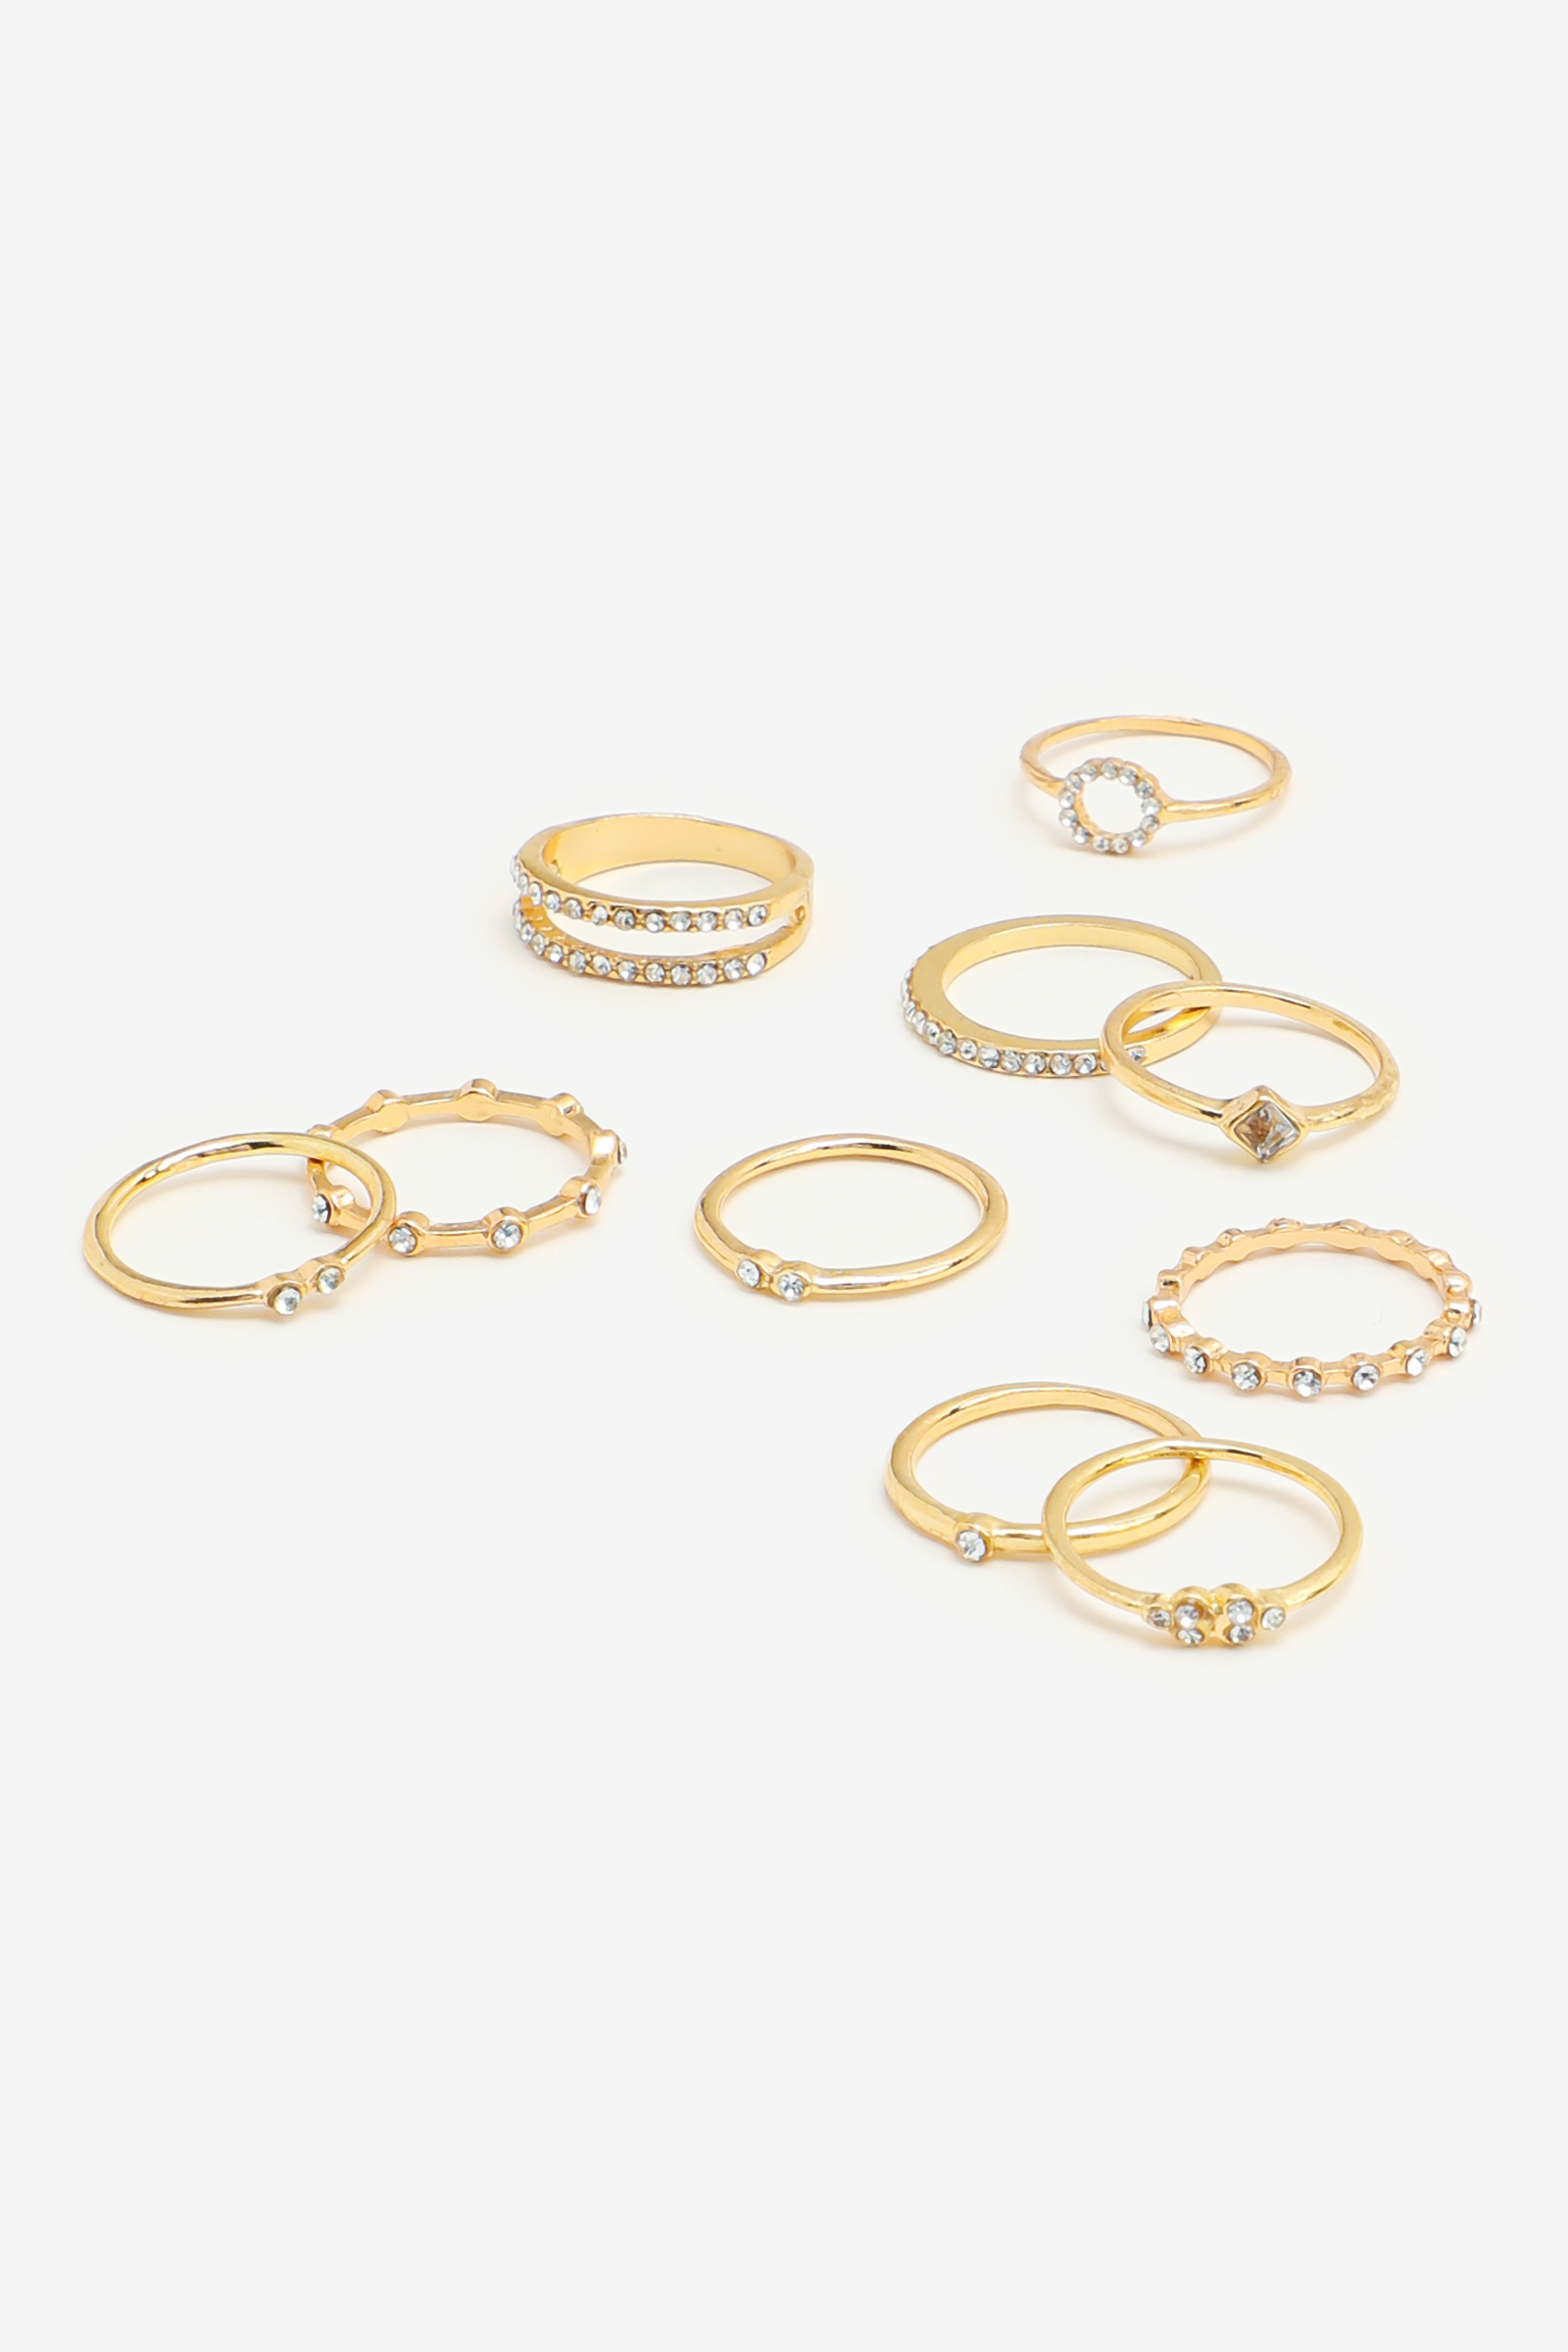 Assorted Rings with Stones